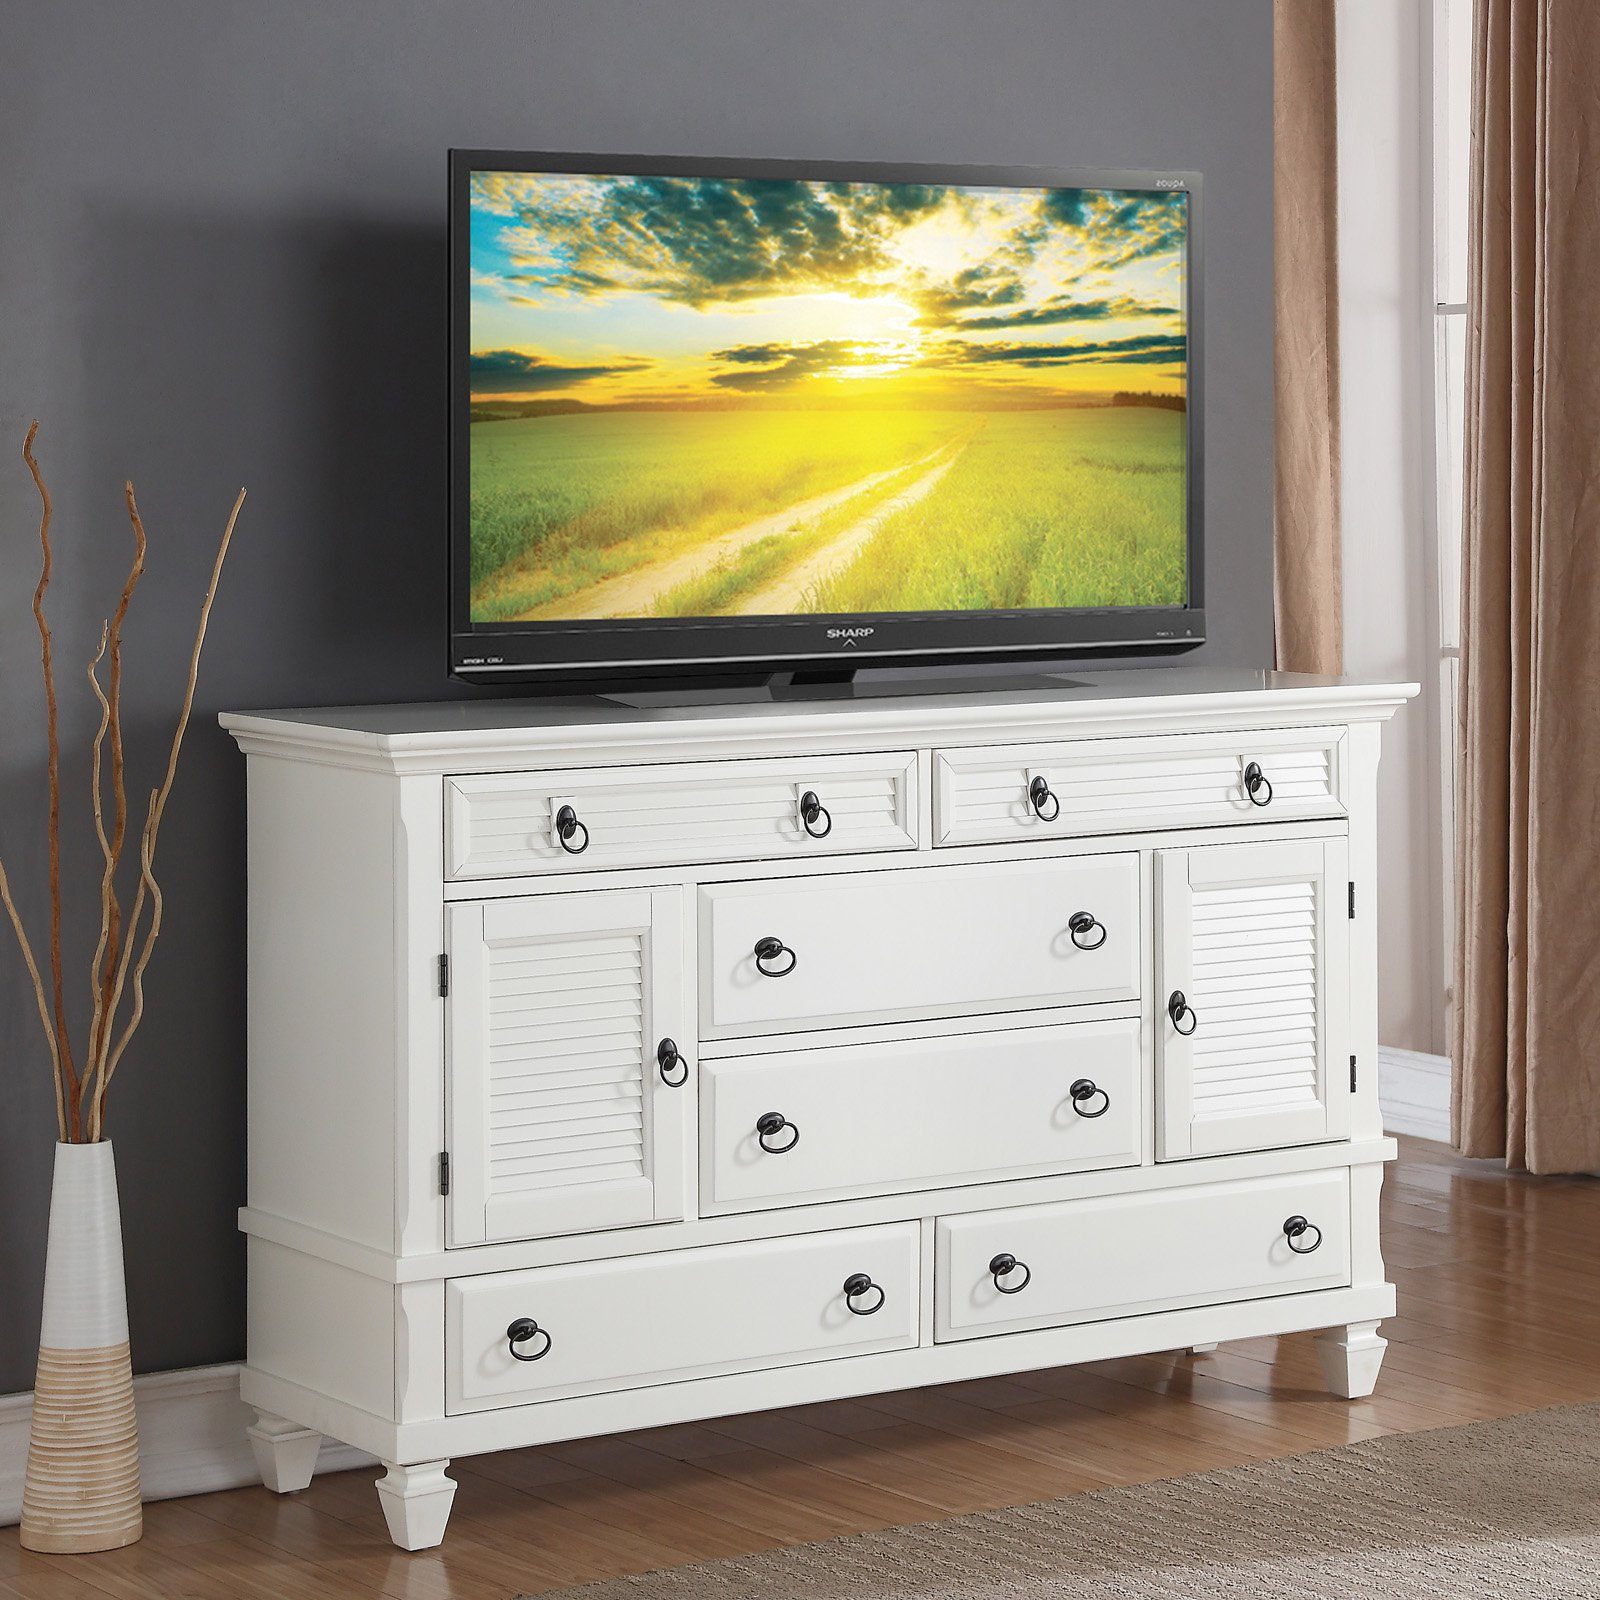 Roundhill Furniture Regitina 6 Drawer Dresser with 2 Doors